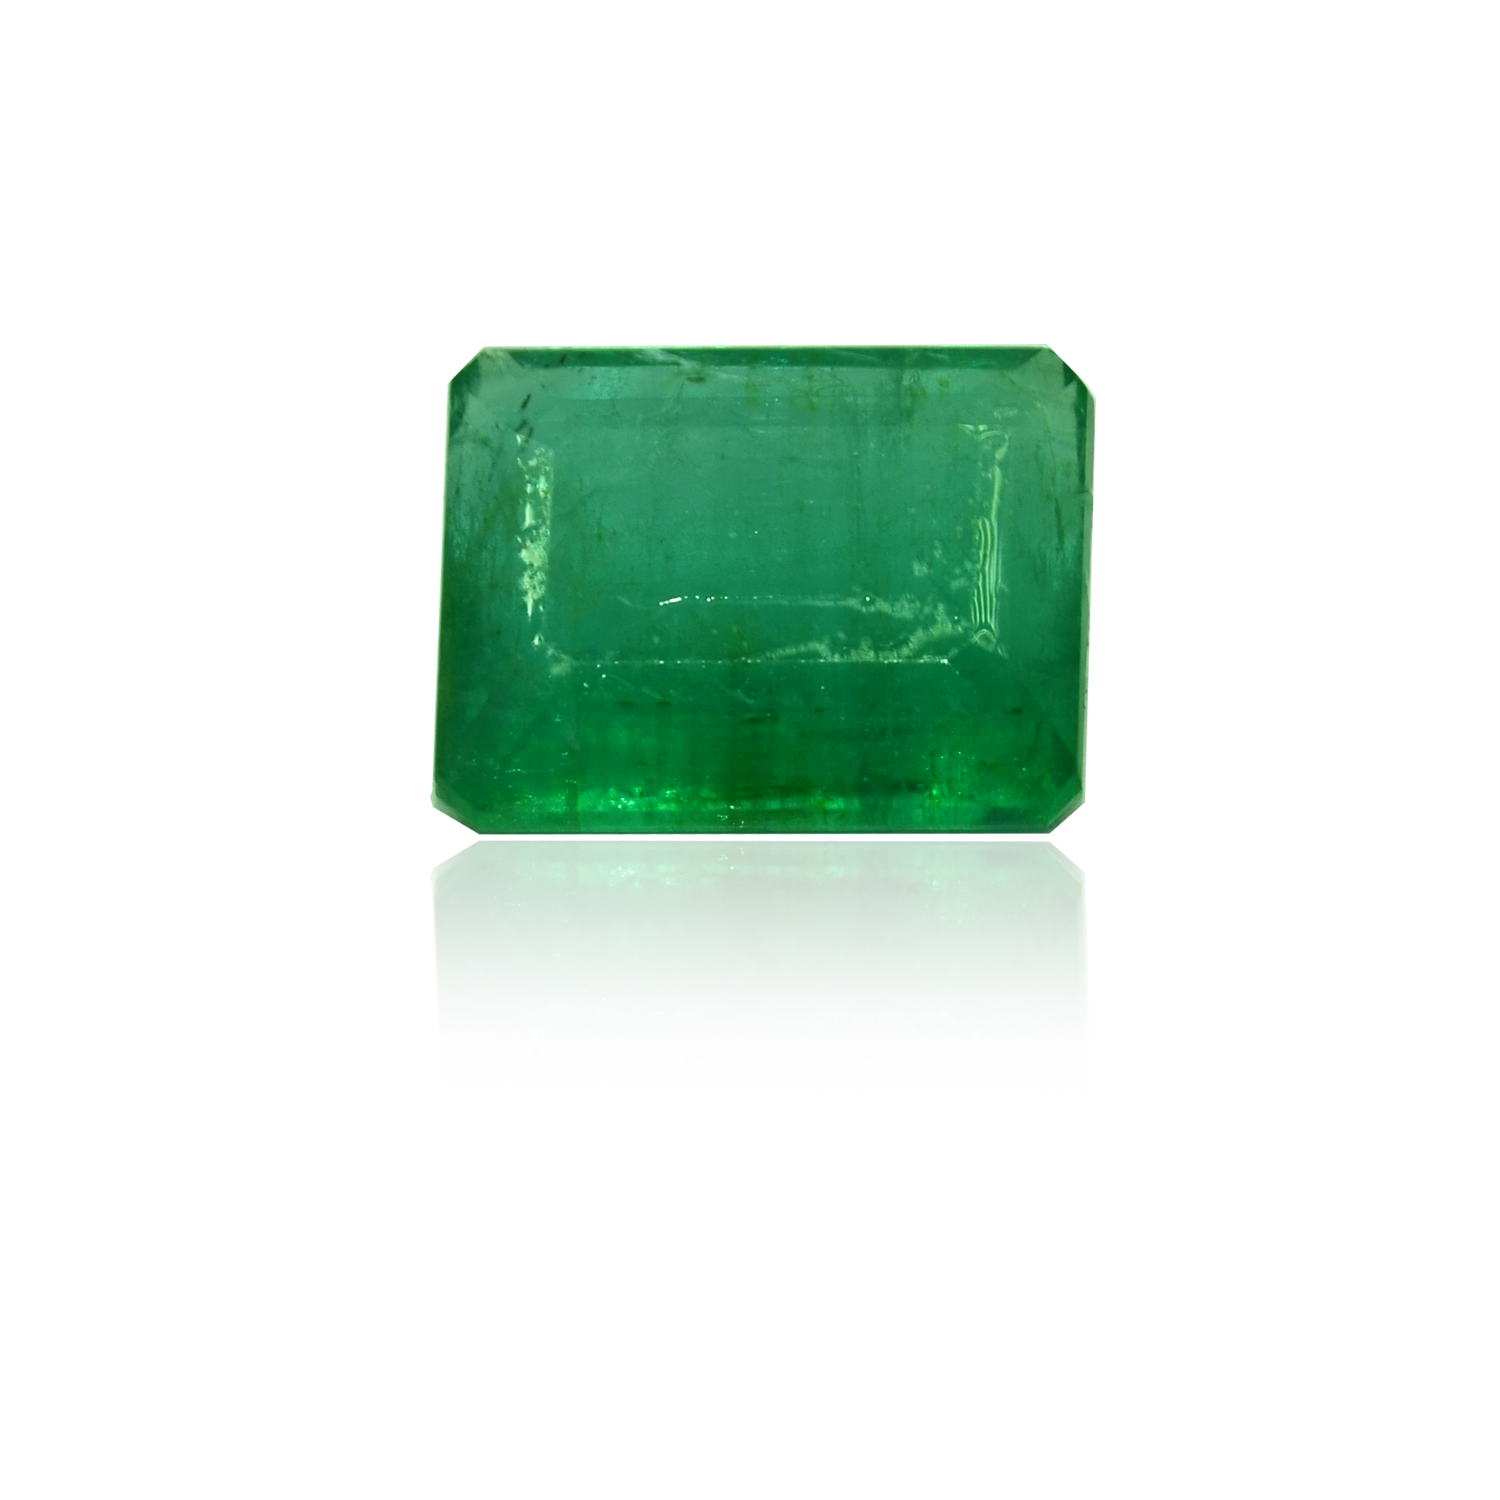 7.35 CARAT, EMERALD STEP CUT NATURAL EMERALD